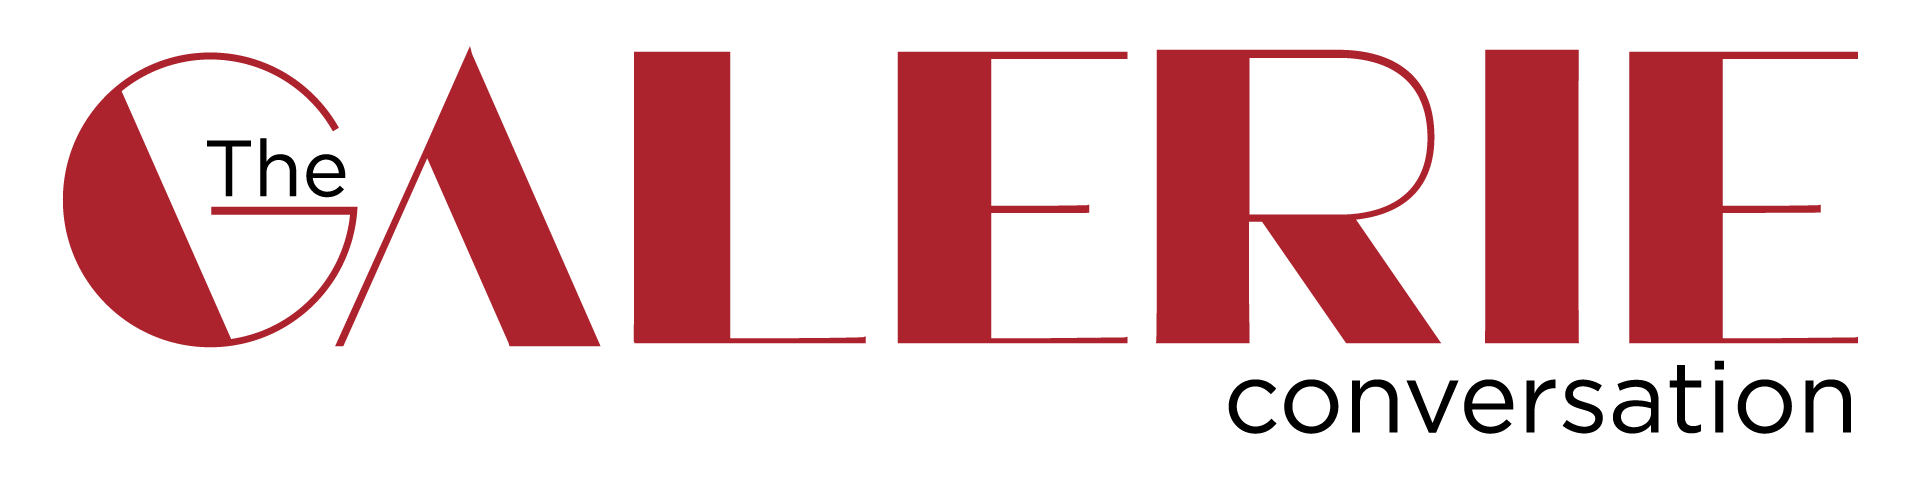 The-Galerie-conversation-Logo.png